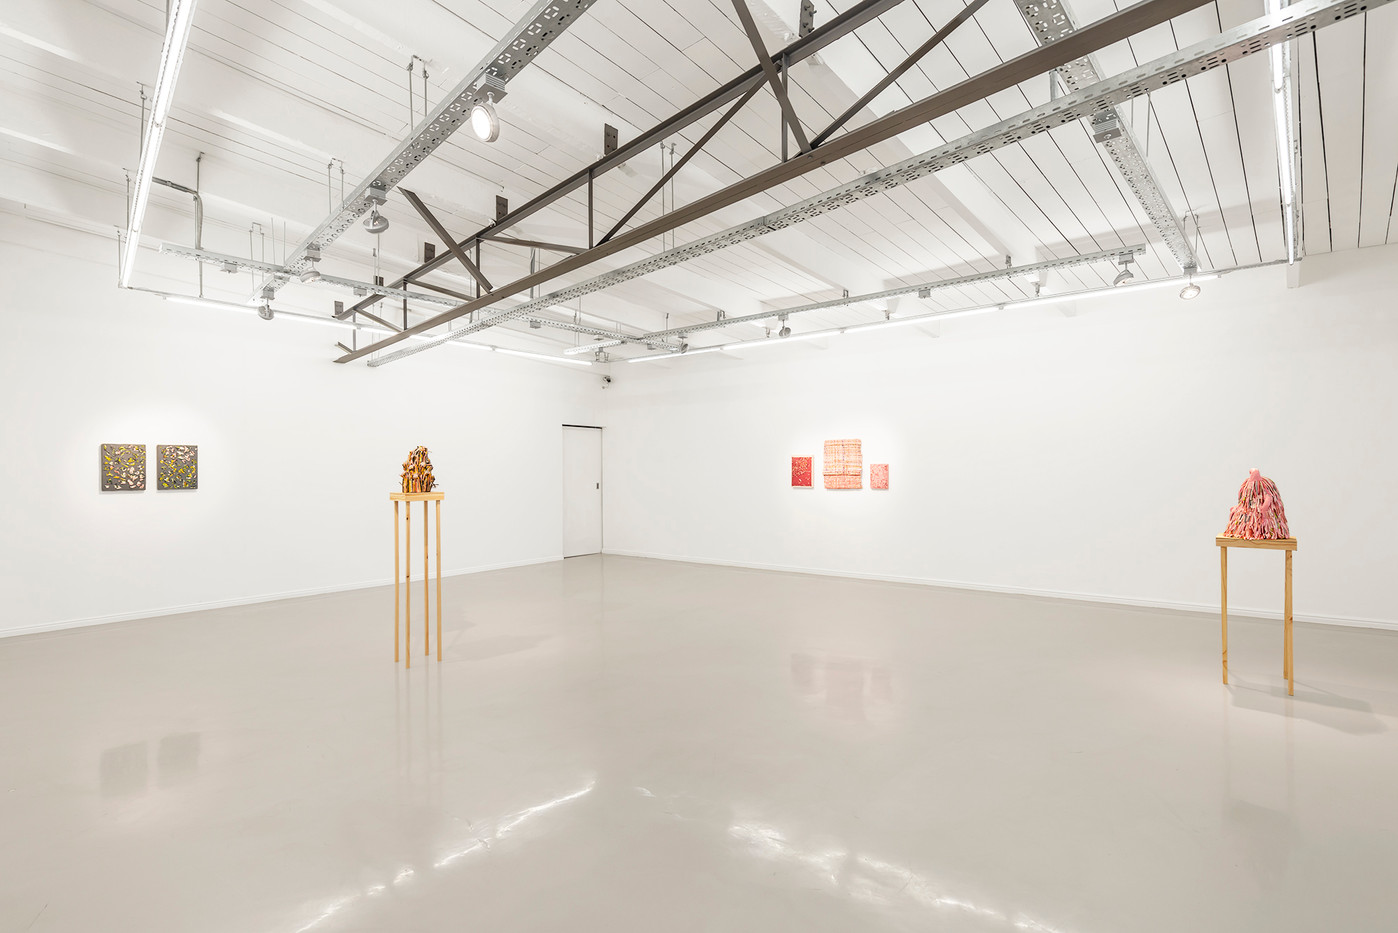 Gabrielle Kruger | For Paint to Dry | 2019 | Installation View